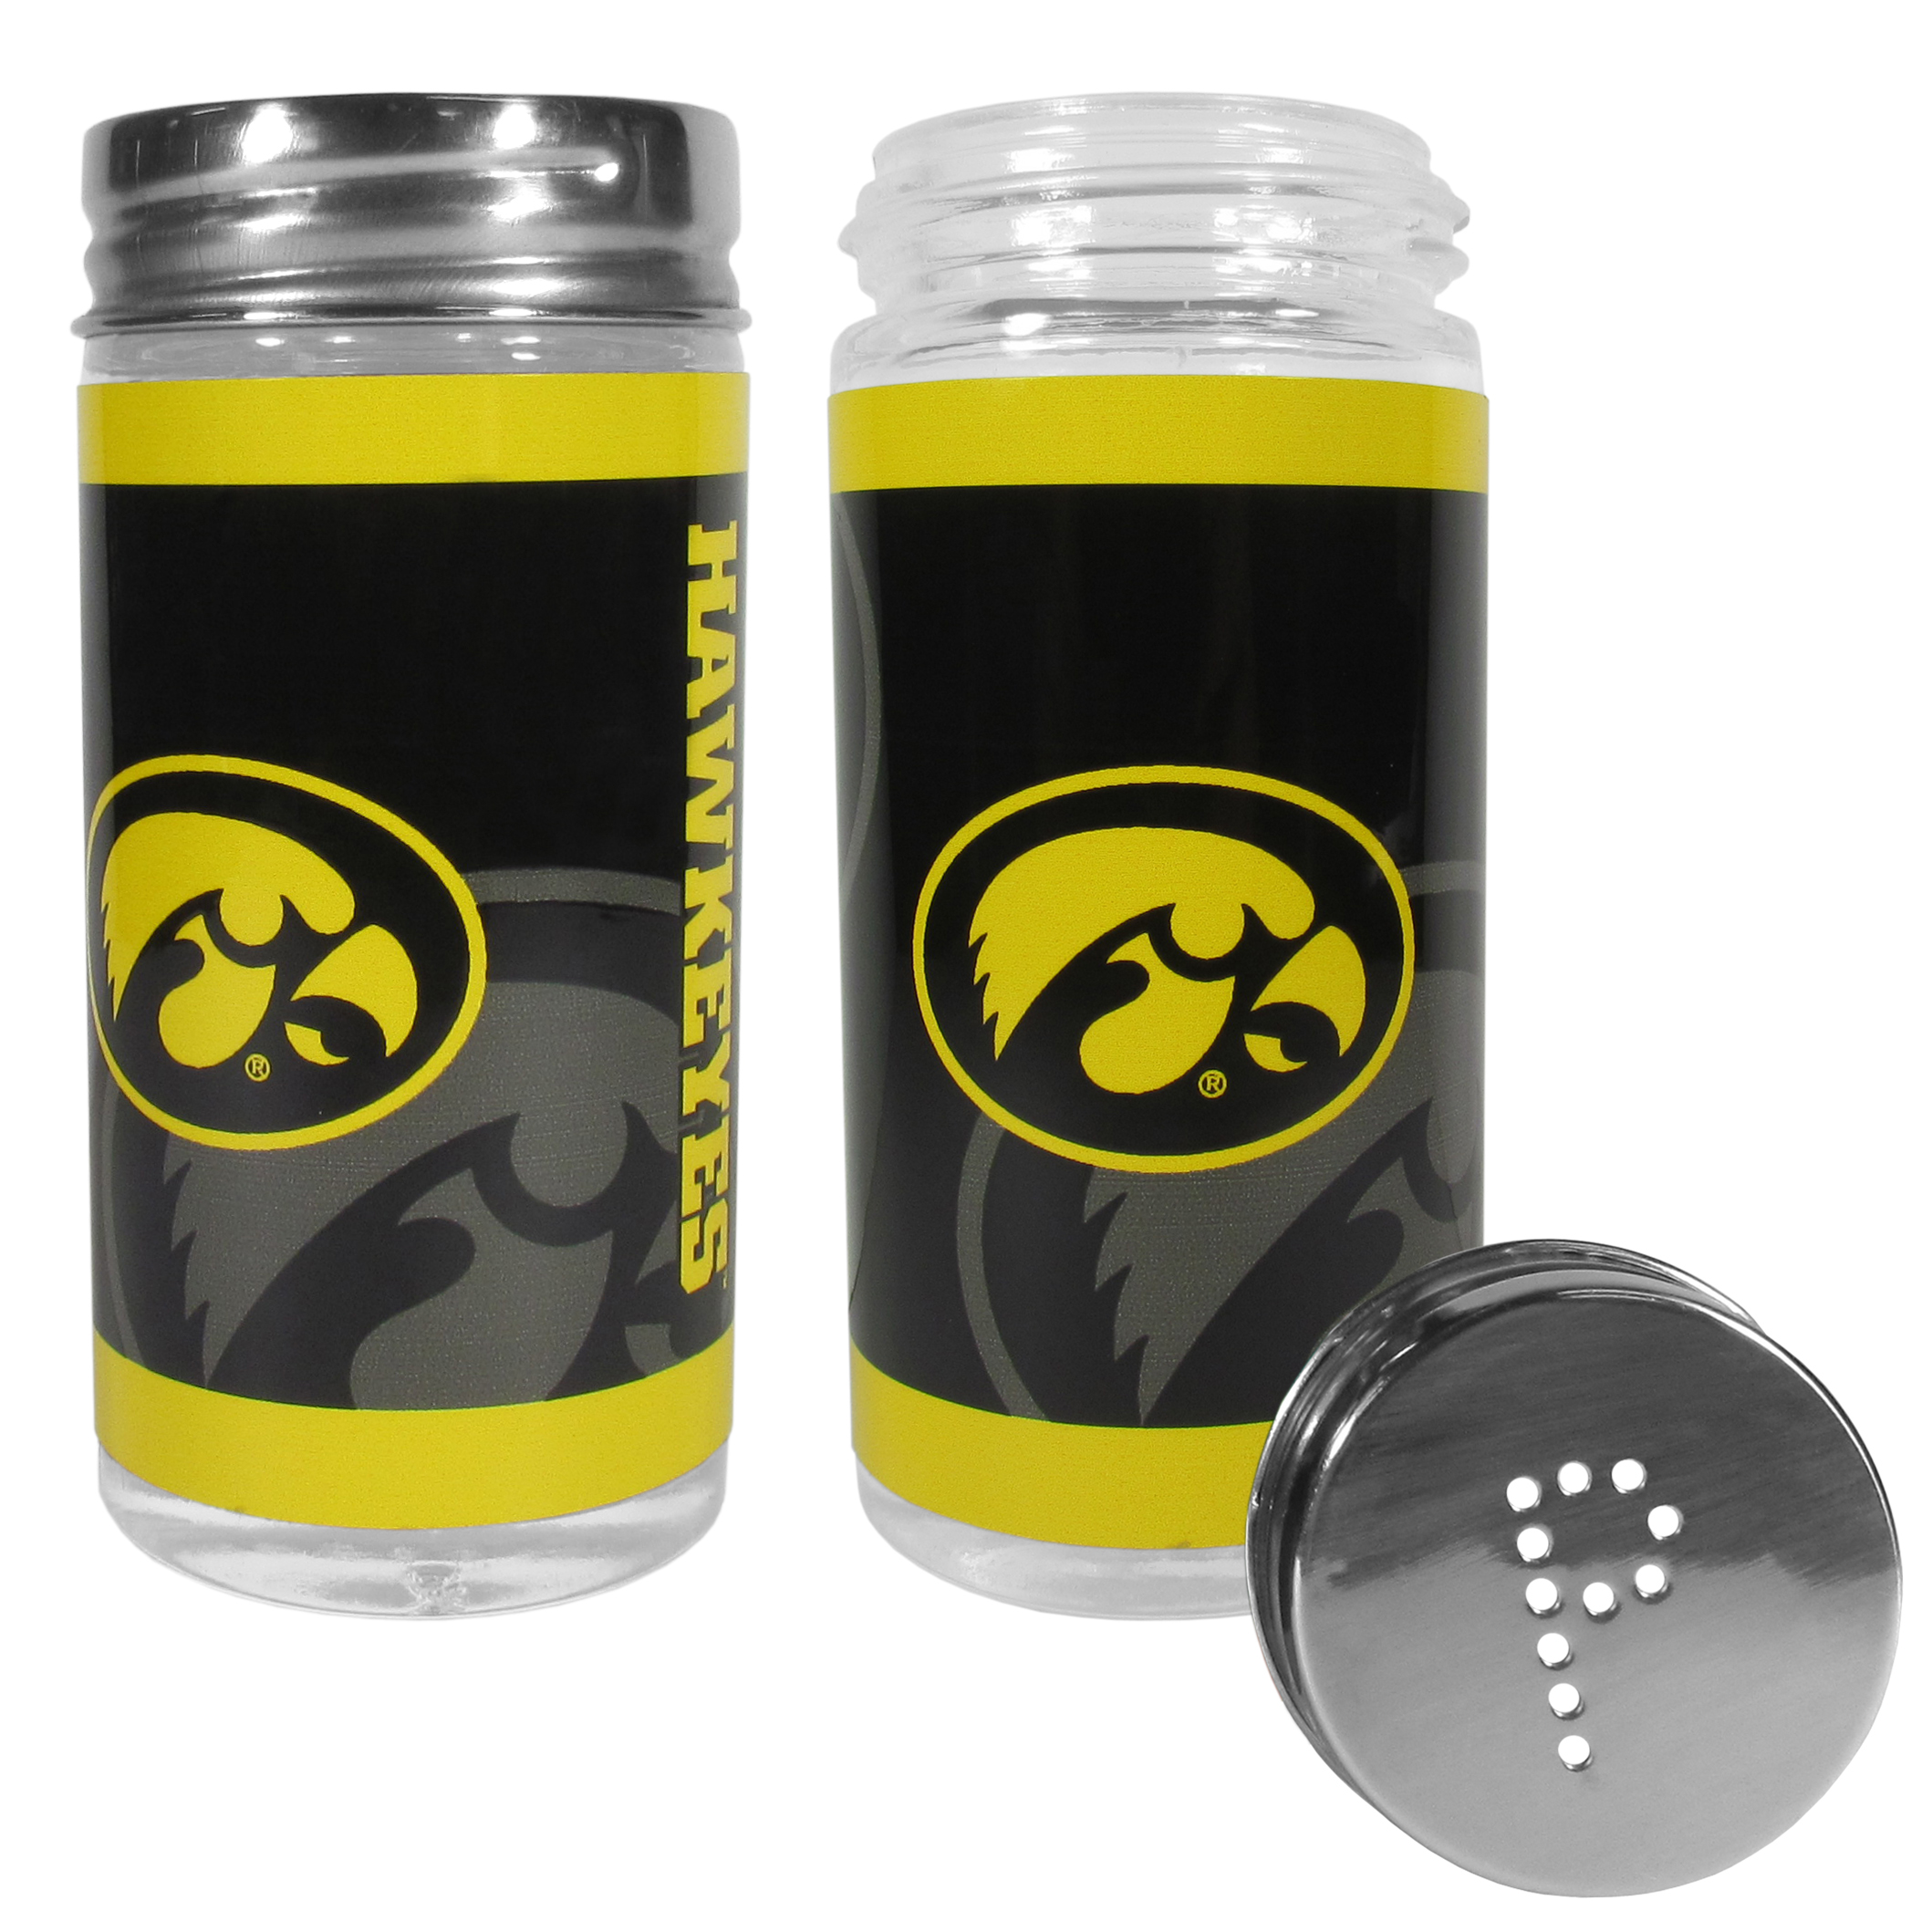 Iowa Hawkeyes Tailgater Salt and Pepper Shakers - No tailgate party is complete without your Iowa Hawkeyes salt & pepper shakers featuring bright team graphics. The glass shakers are 3.75 inches tall and the screw top lids have holes that spell out P and S. These team shakers are a great grill accessory whether you are barbecuing on the patio, picnicing or having a game day party.